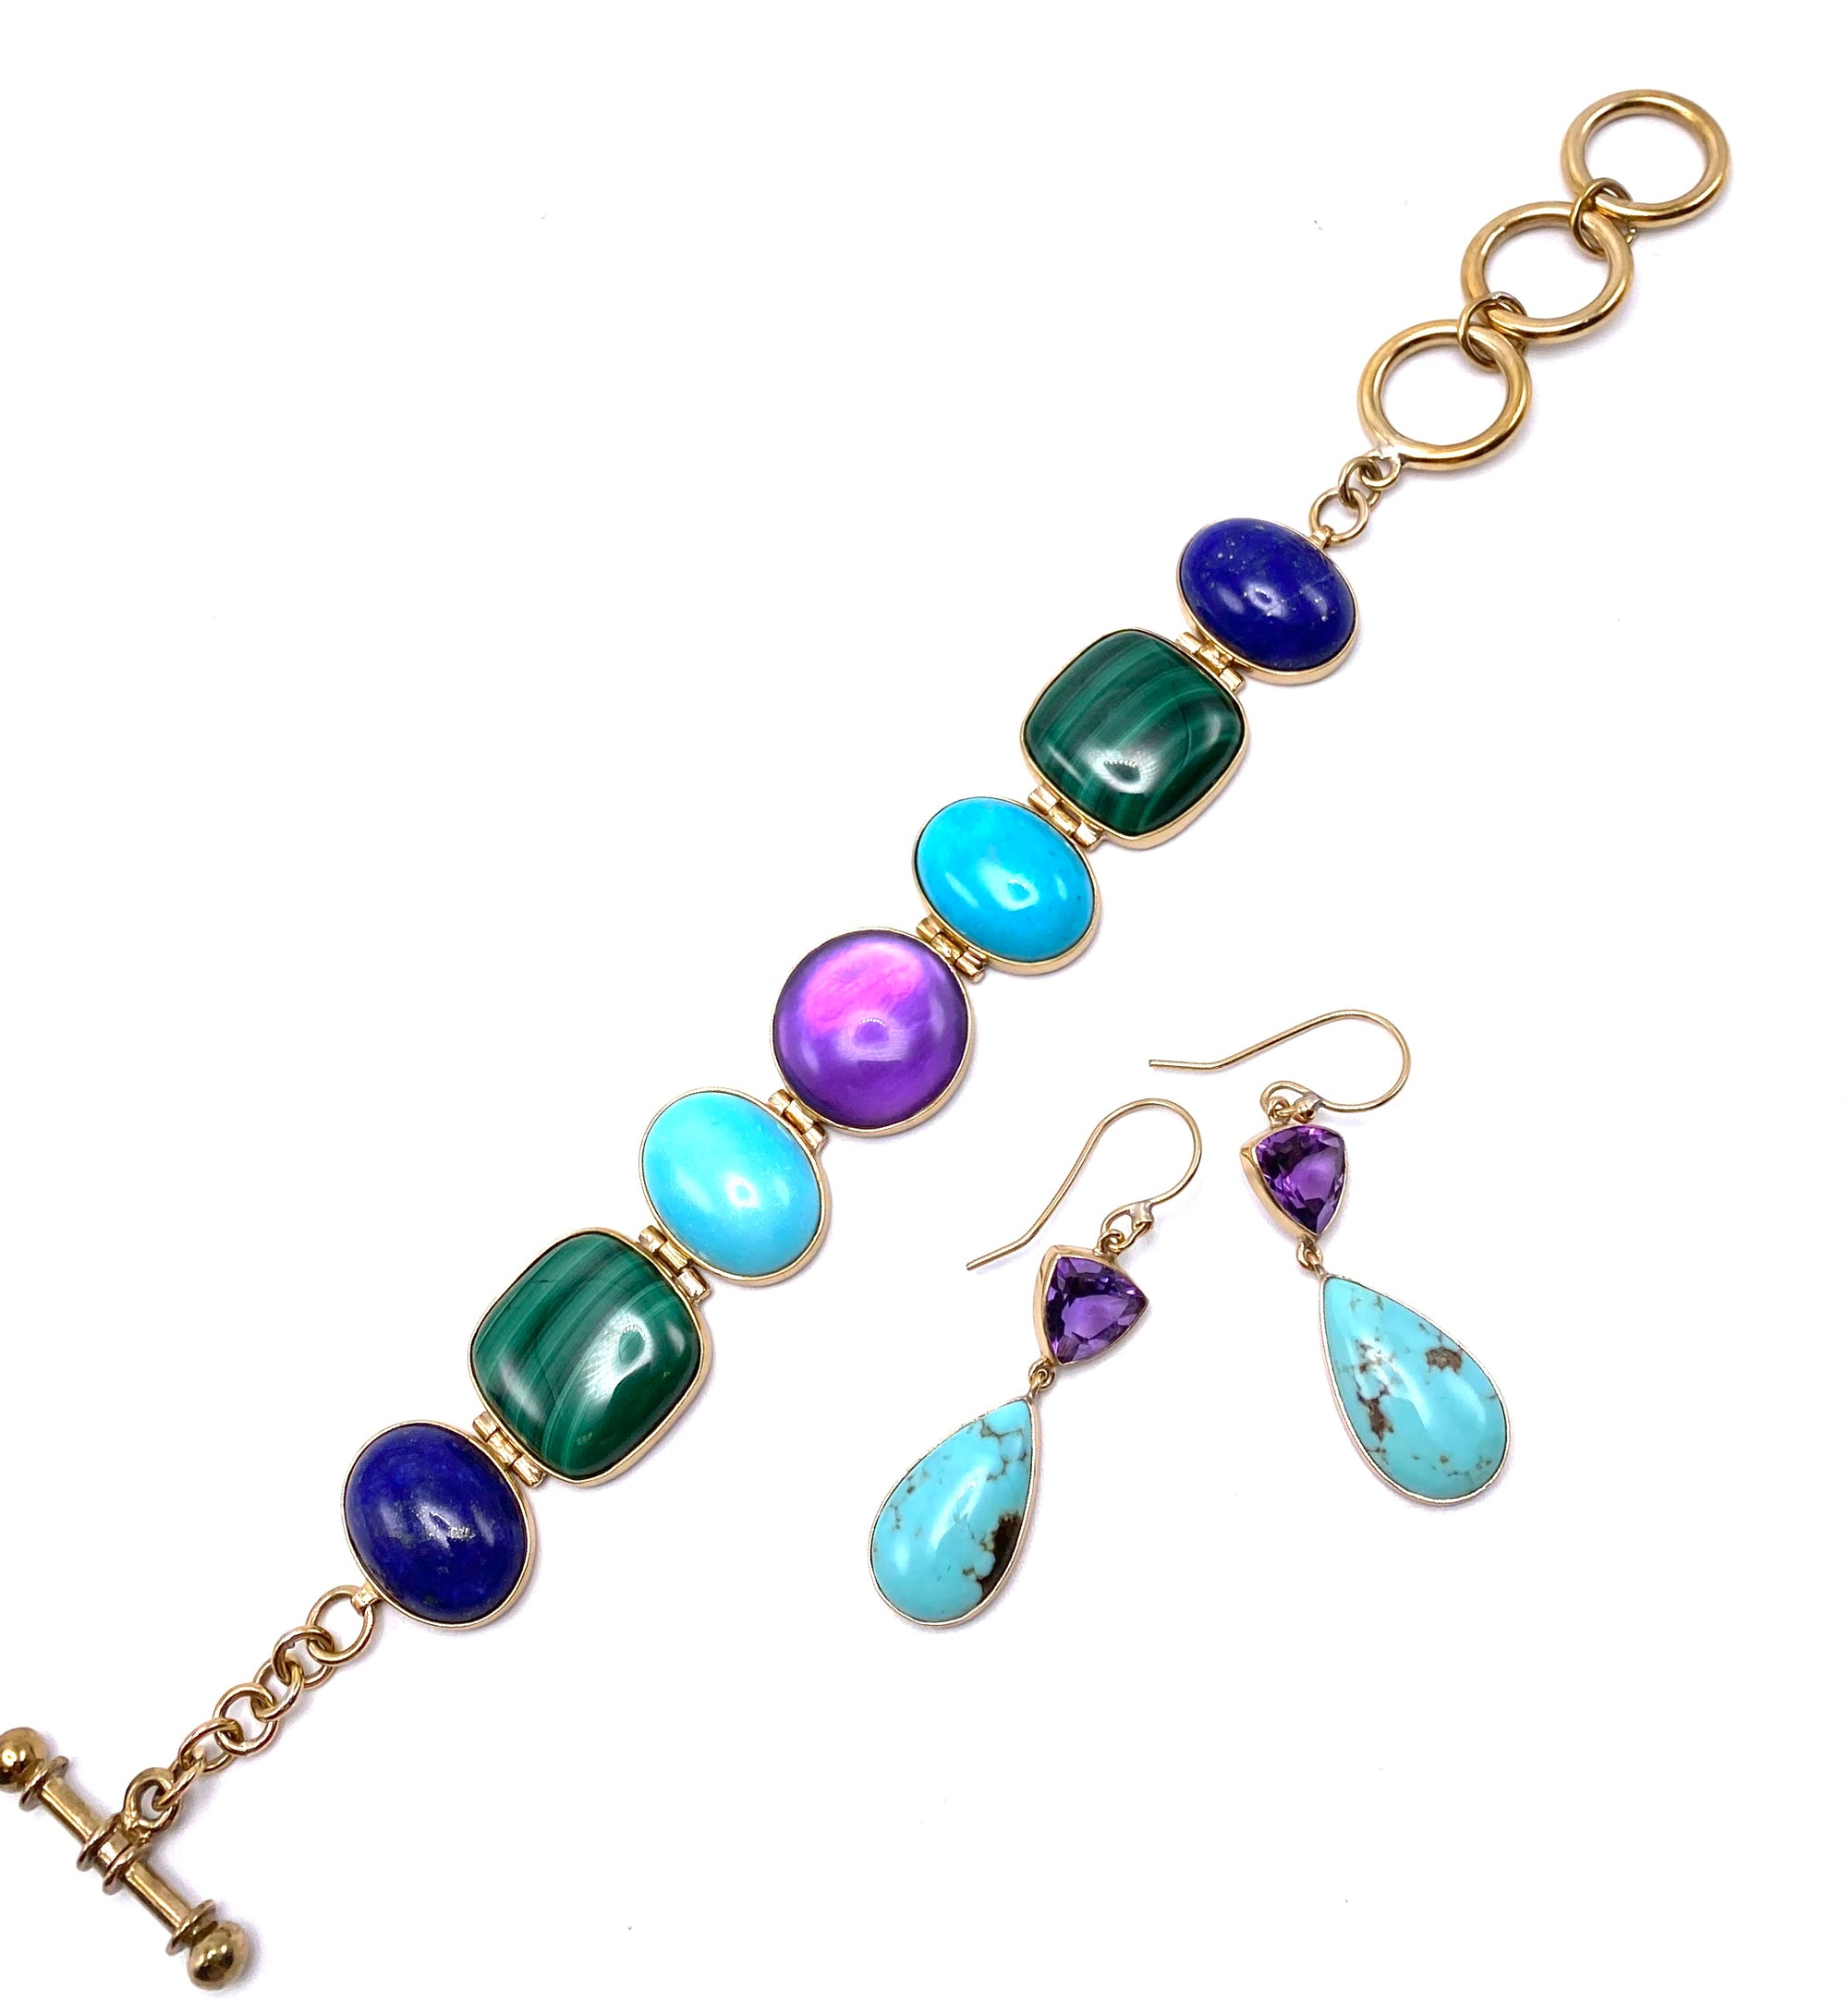 Dina Mackney Jewel Tones Bracelet and Necklace